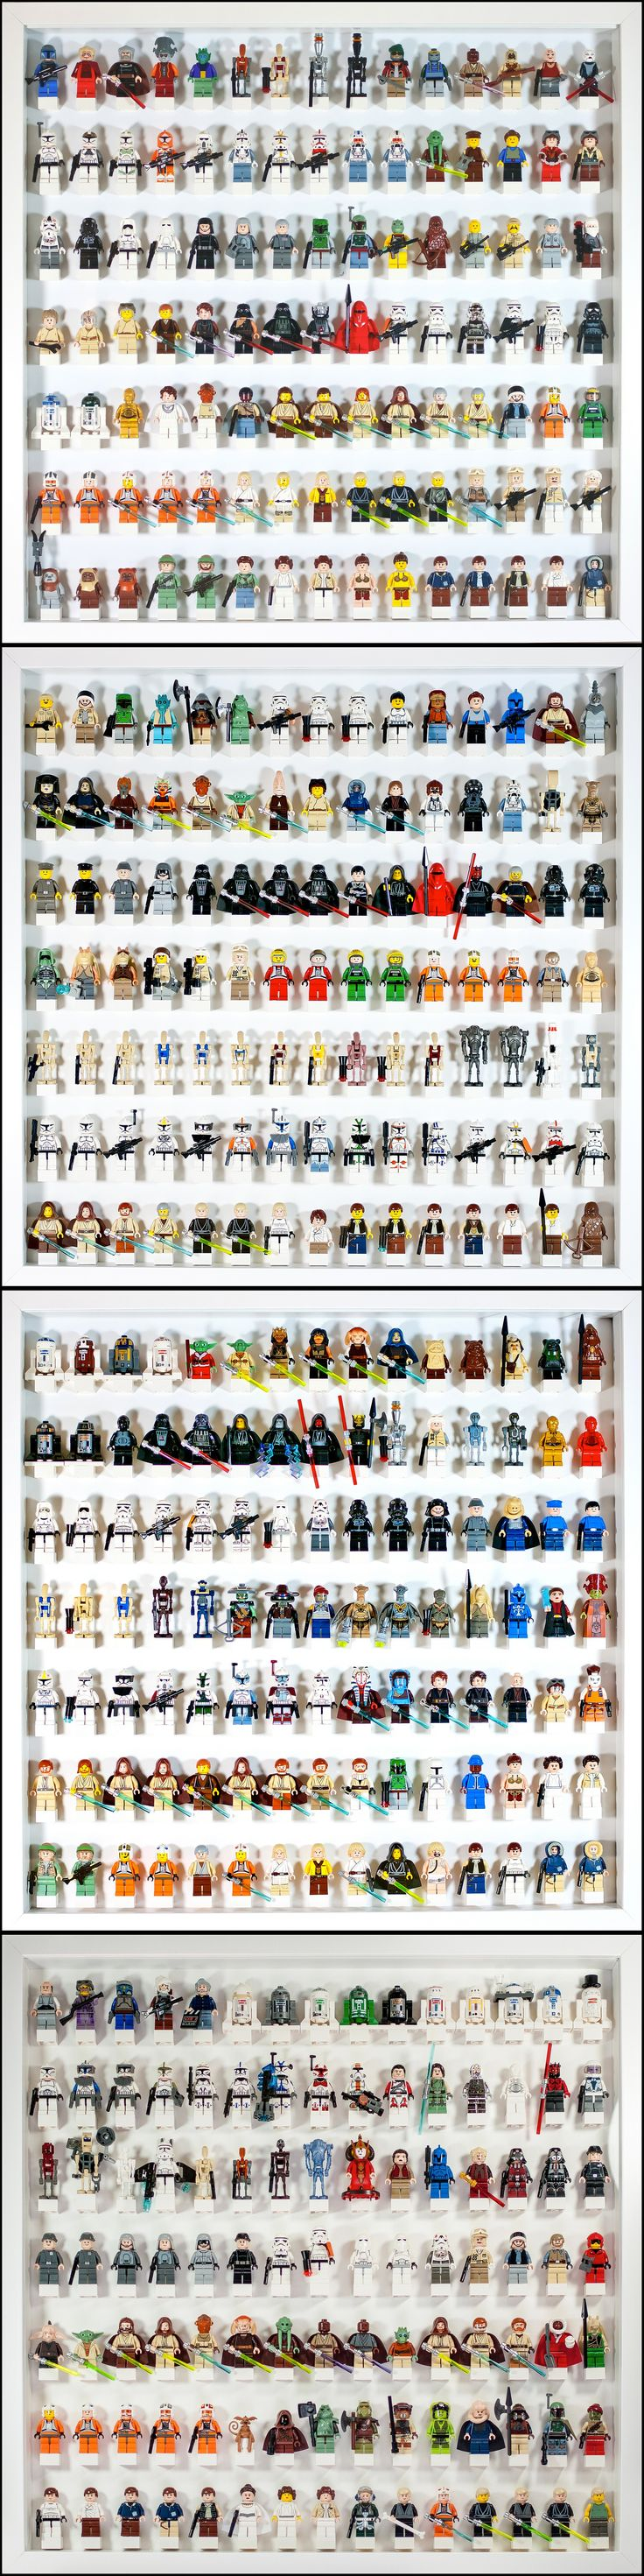 LEGO Star Wars Minifig display 1-4 <<< it's like every character in the Star Wars universe exists in Lego form.